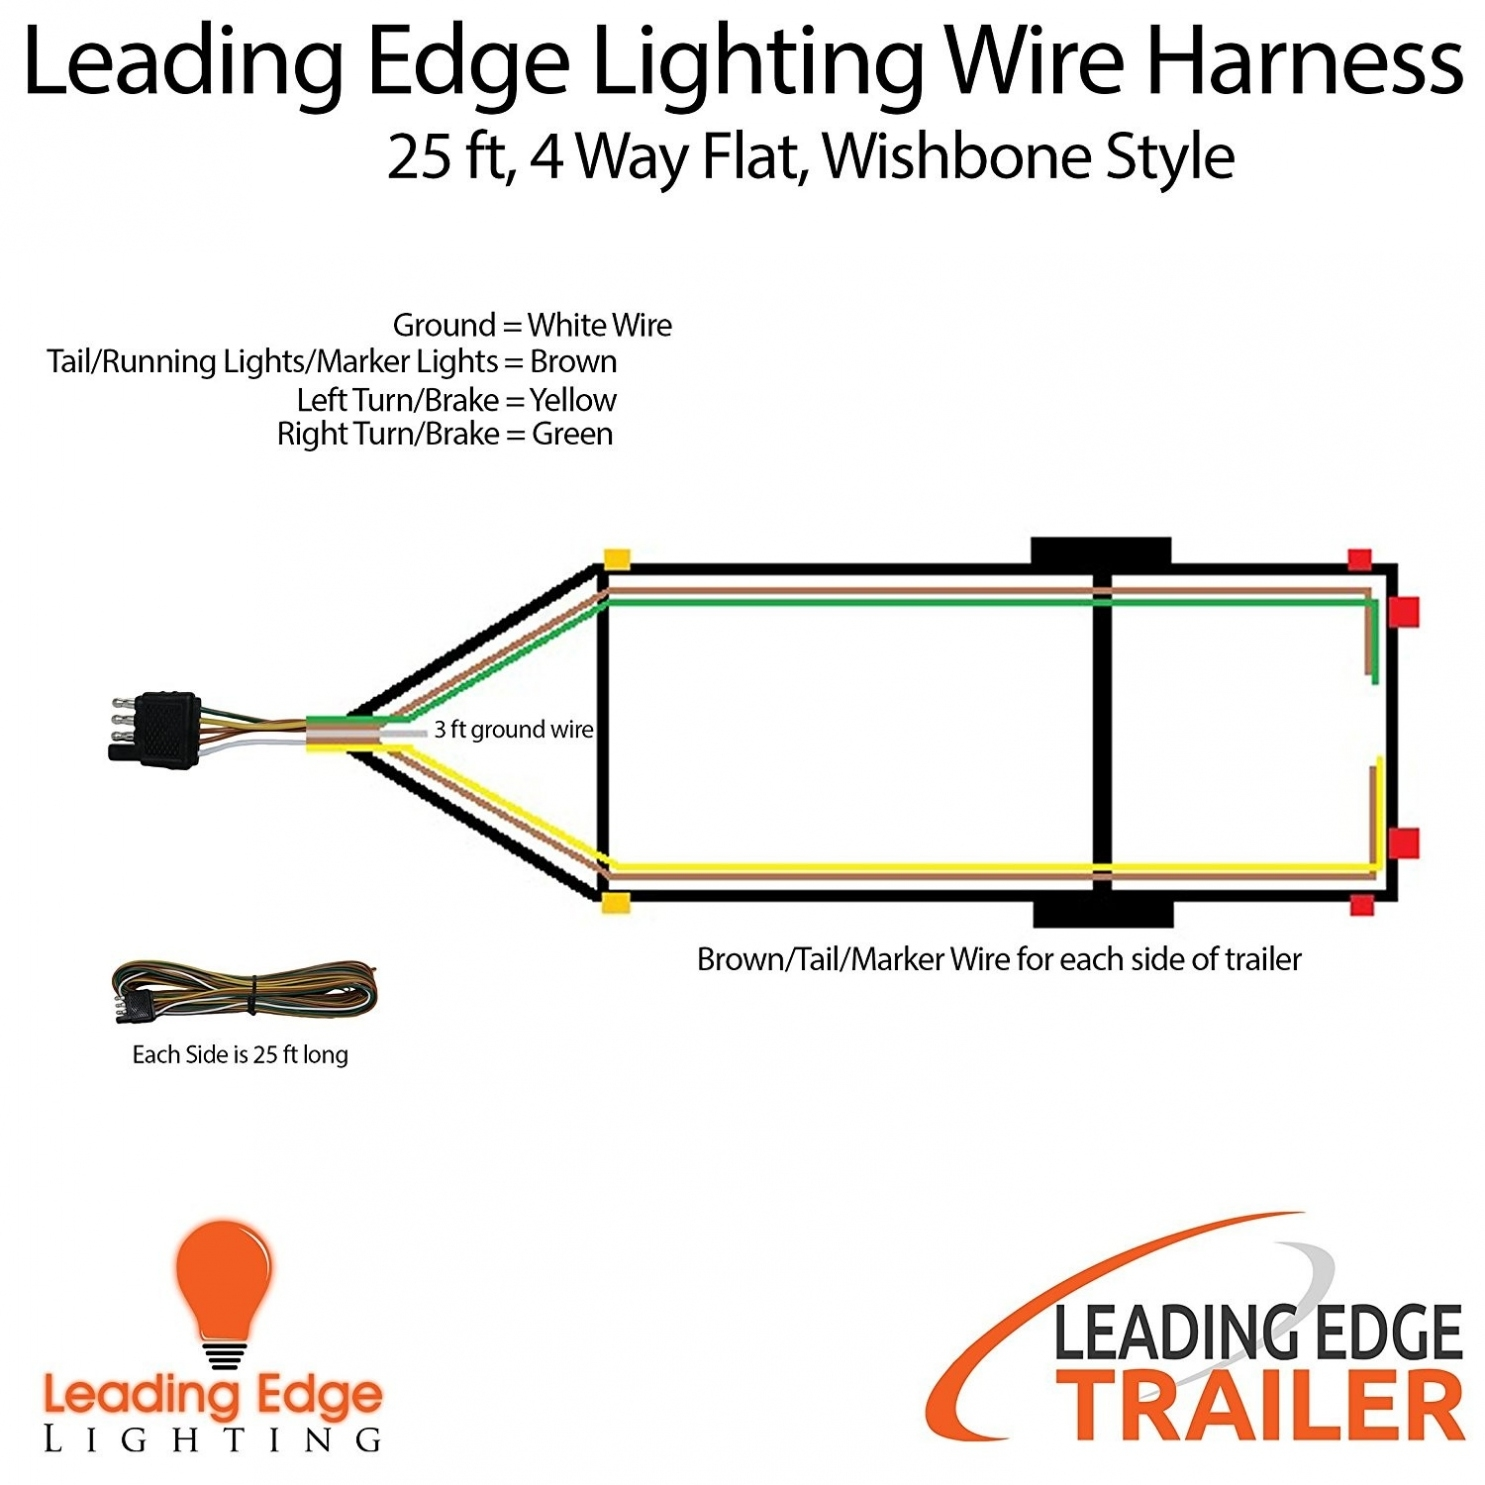 4 flat wire diagram 5 wire to 4 wire trailer wiring diagram | free wiring diagram 4 flat wire harness diagram